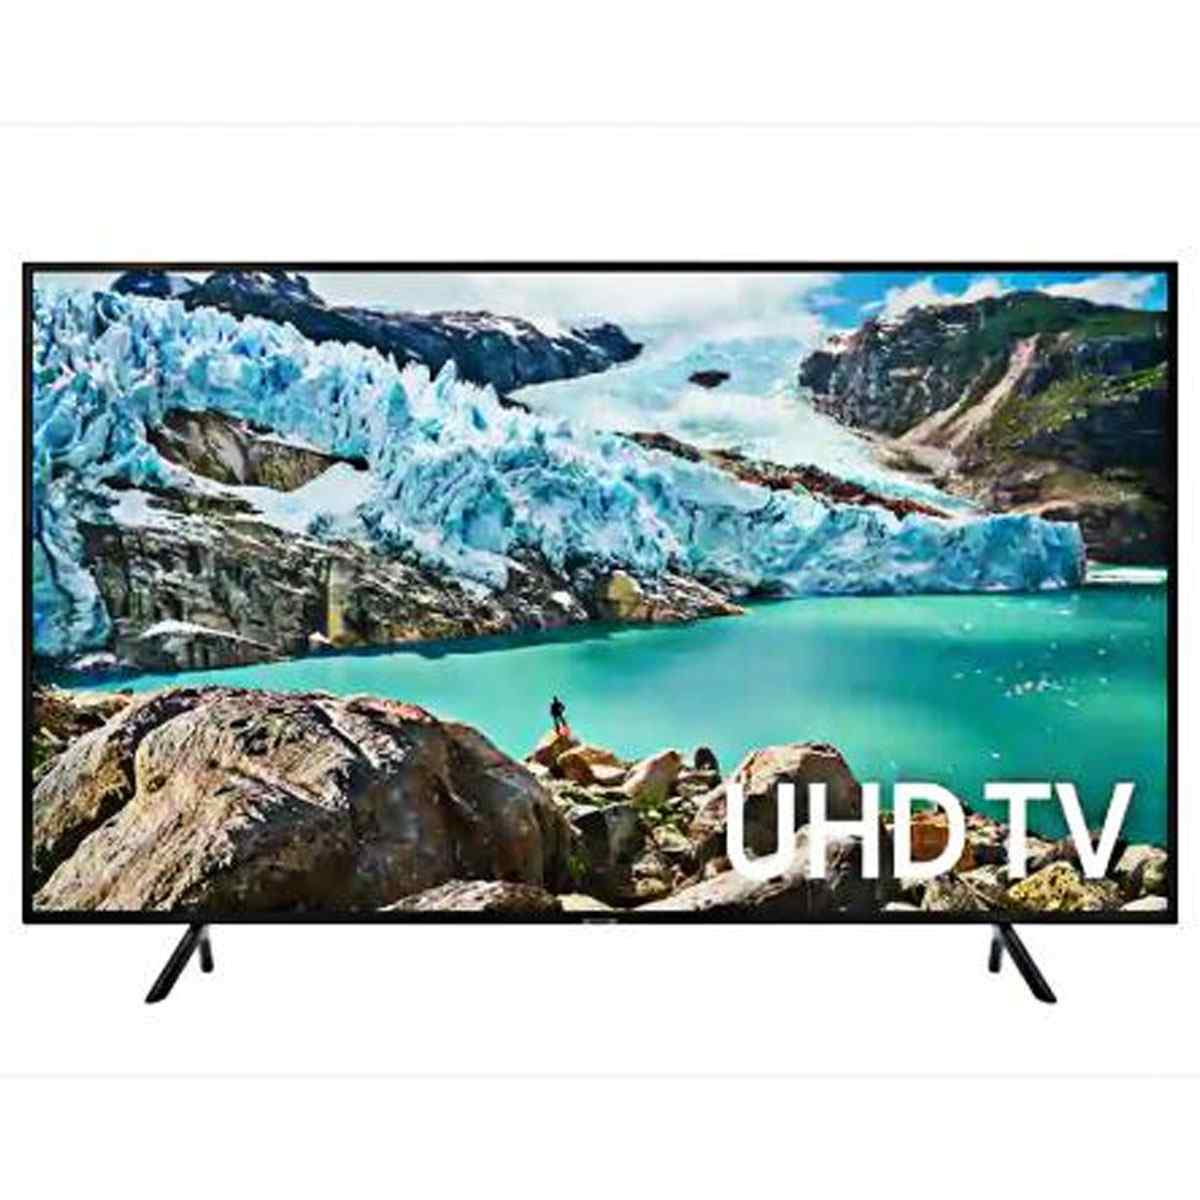 Samsung 58 Inch 4K UHD Smart LED TV (RU7100)